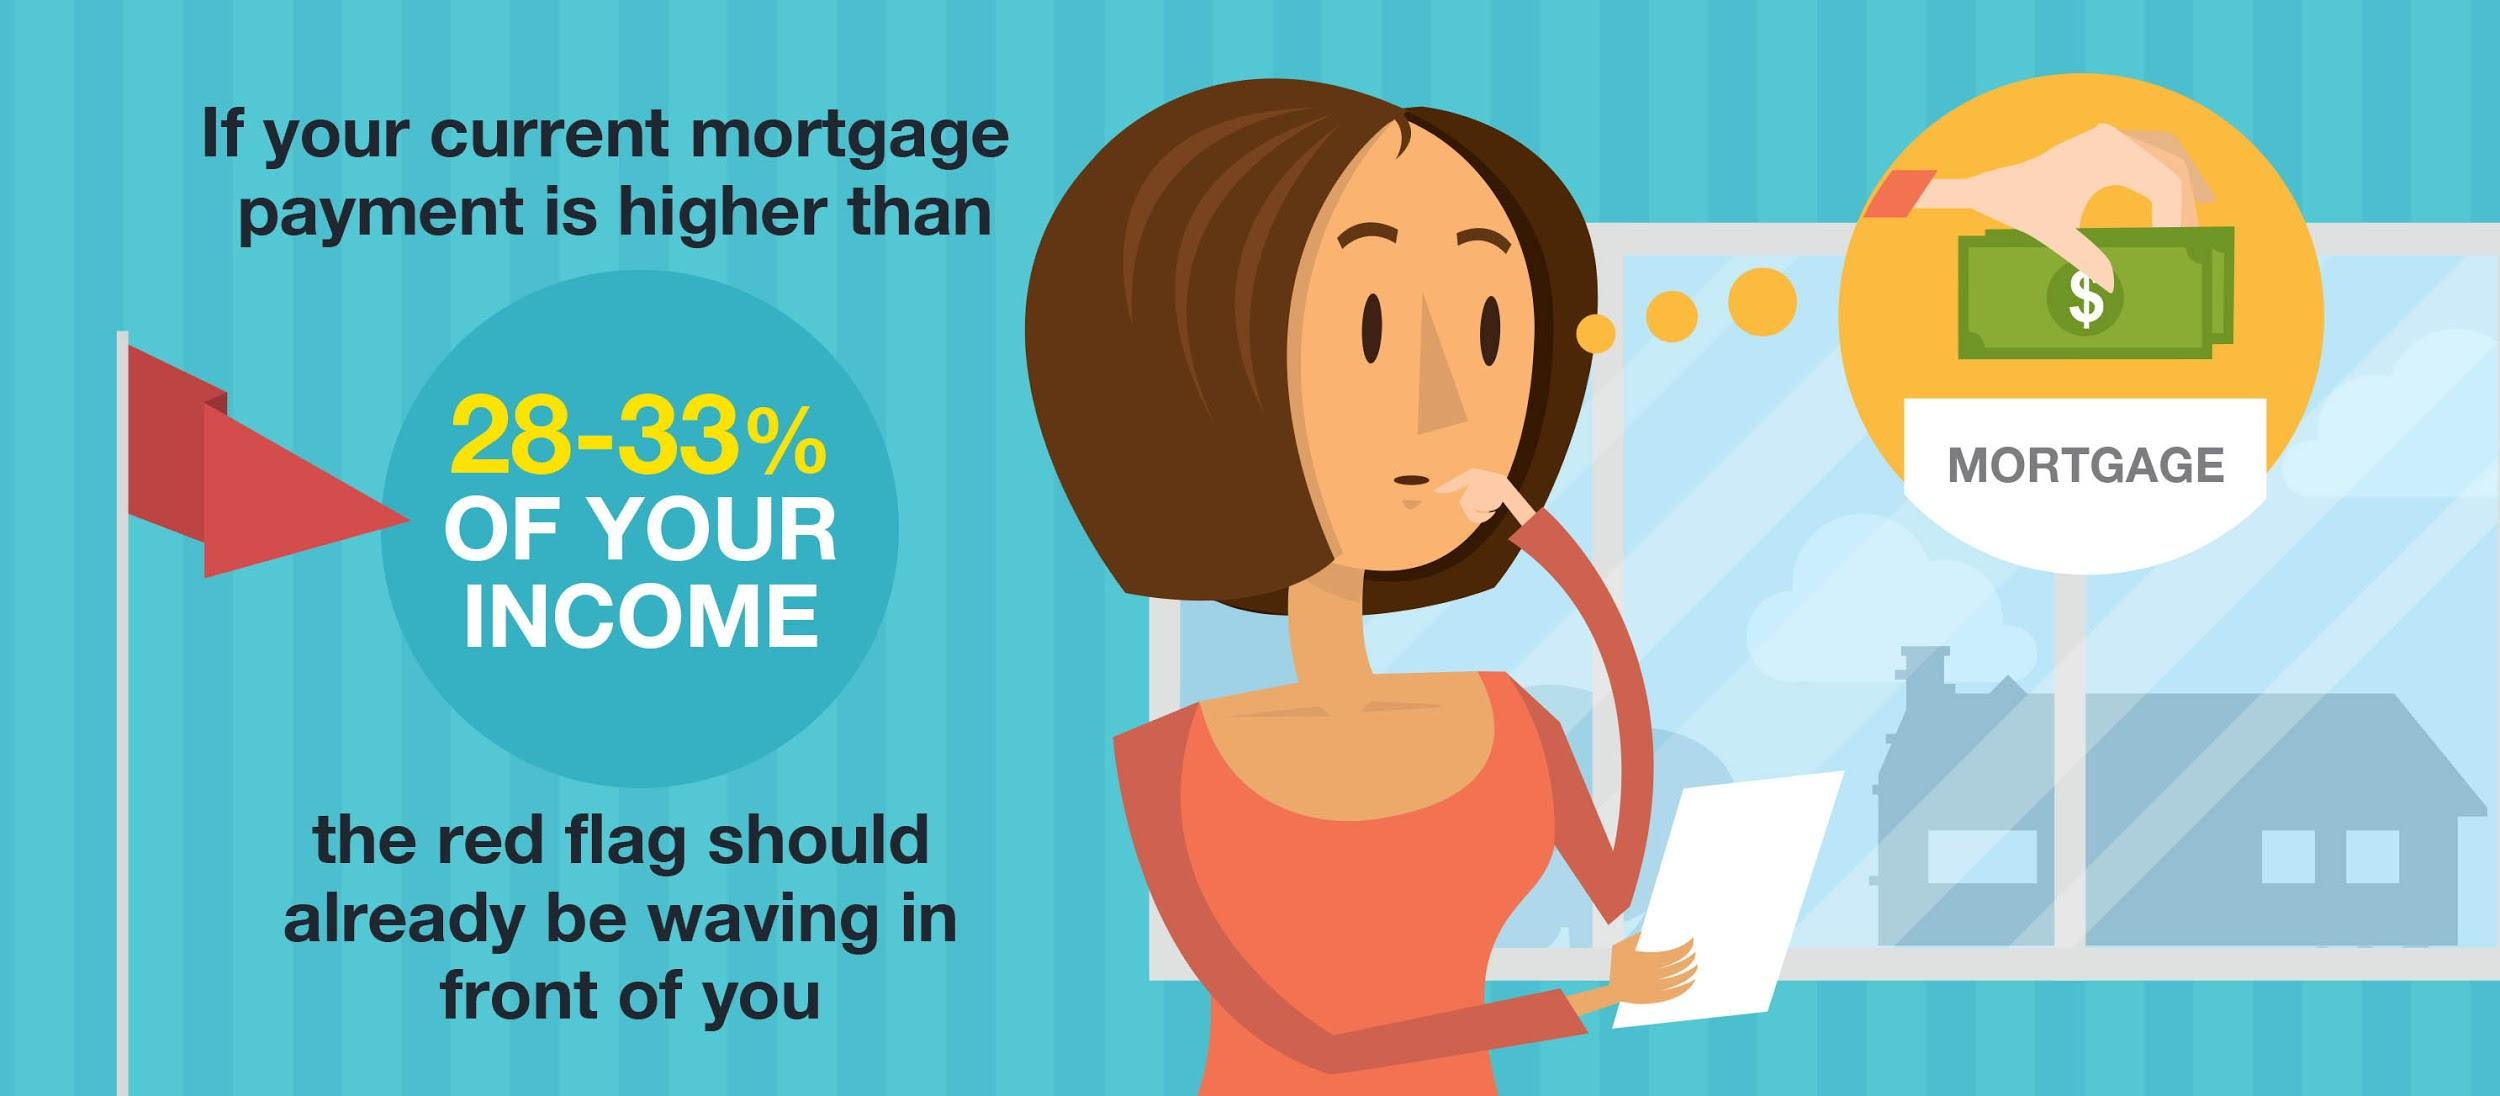 woman considering mortgage payments too high